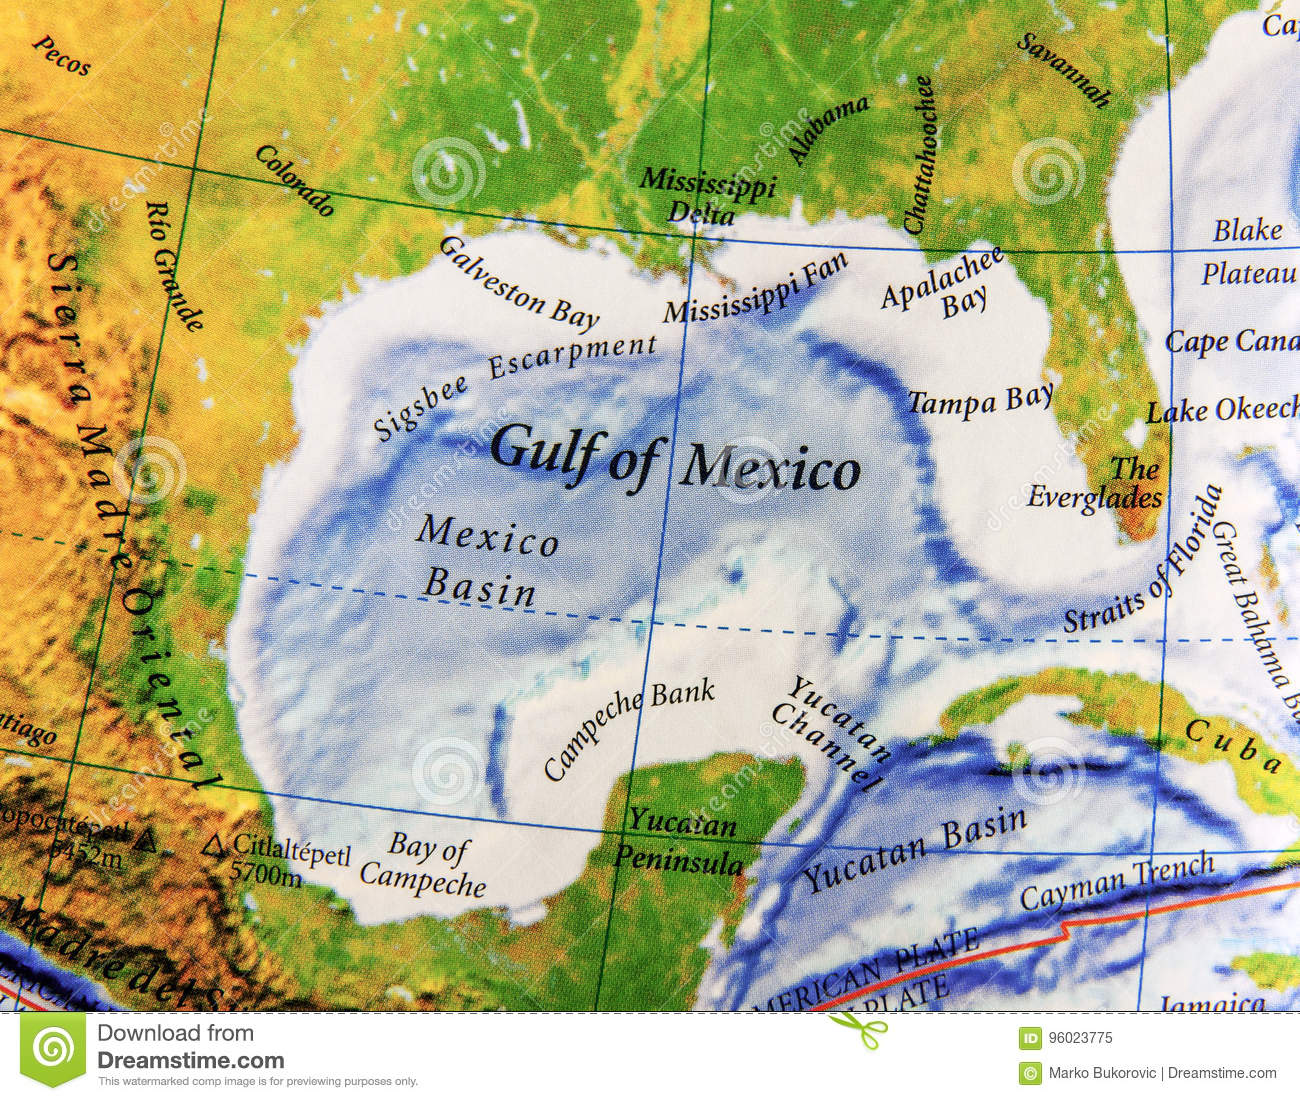 Picture of: Gulf Mexico Map Photos Free Royalty Free Stock Photos From Dreamstime